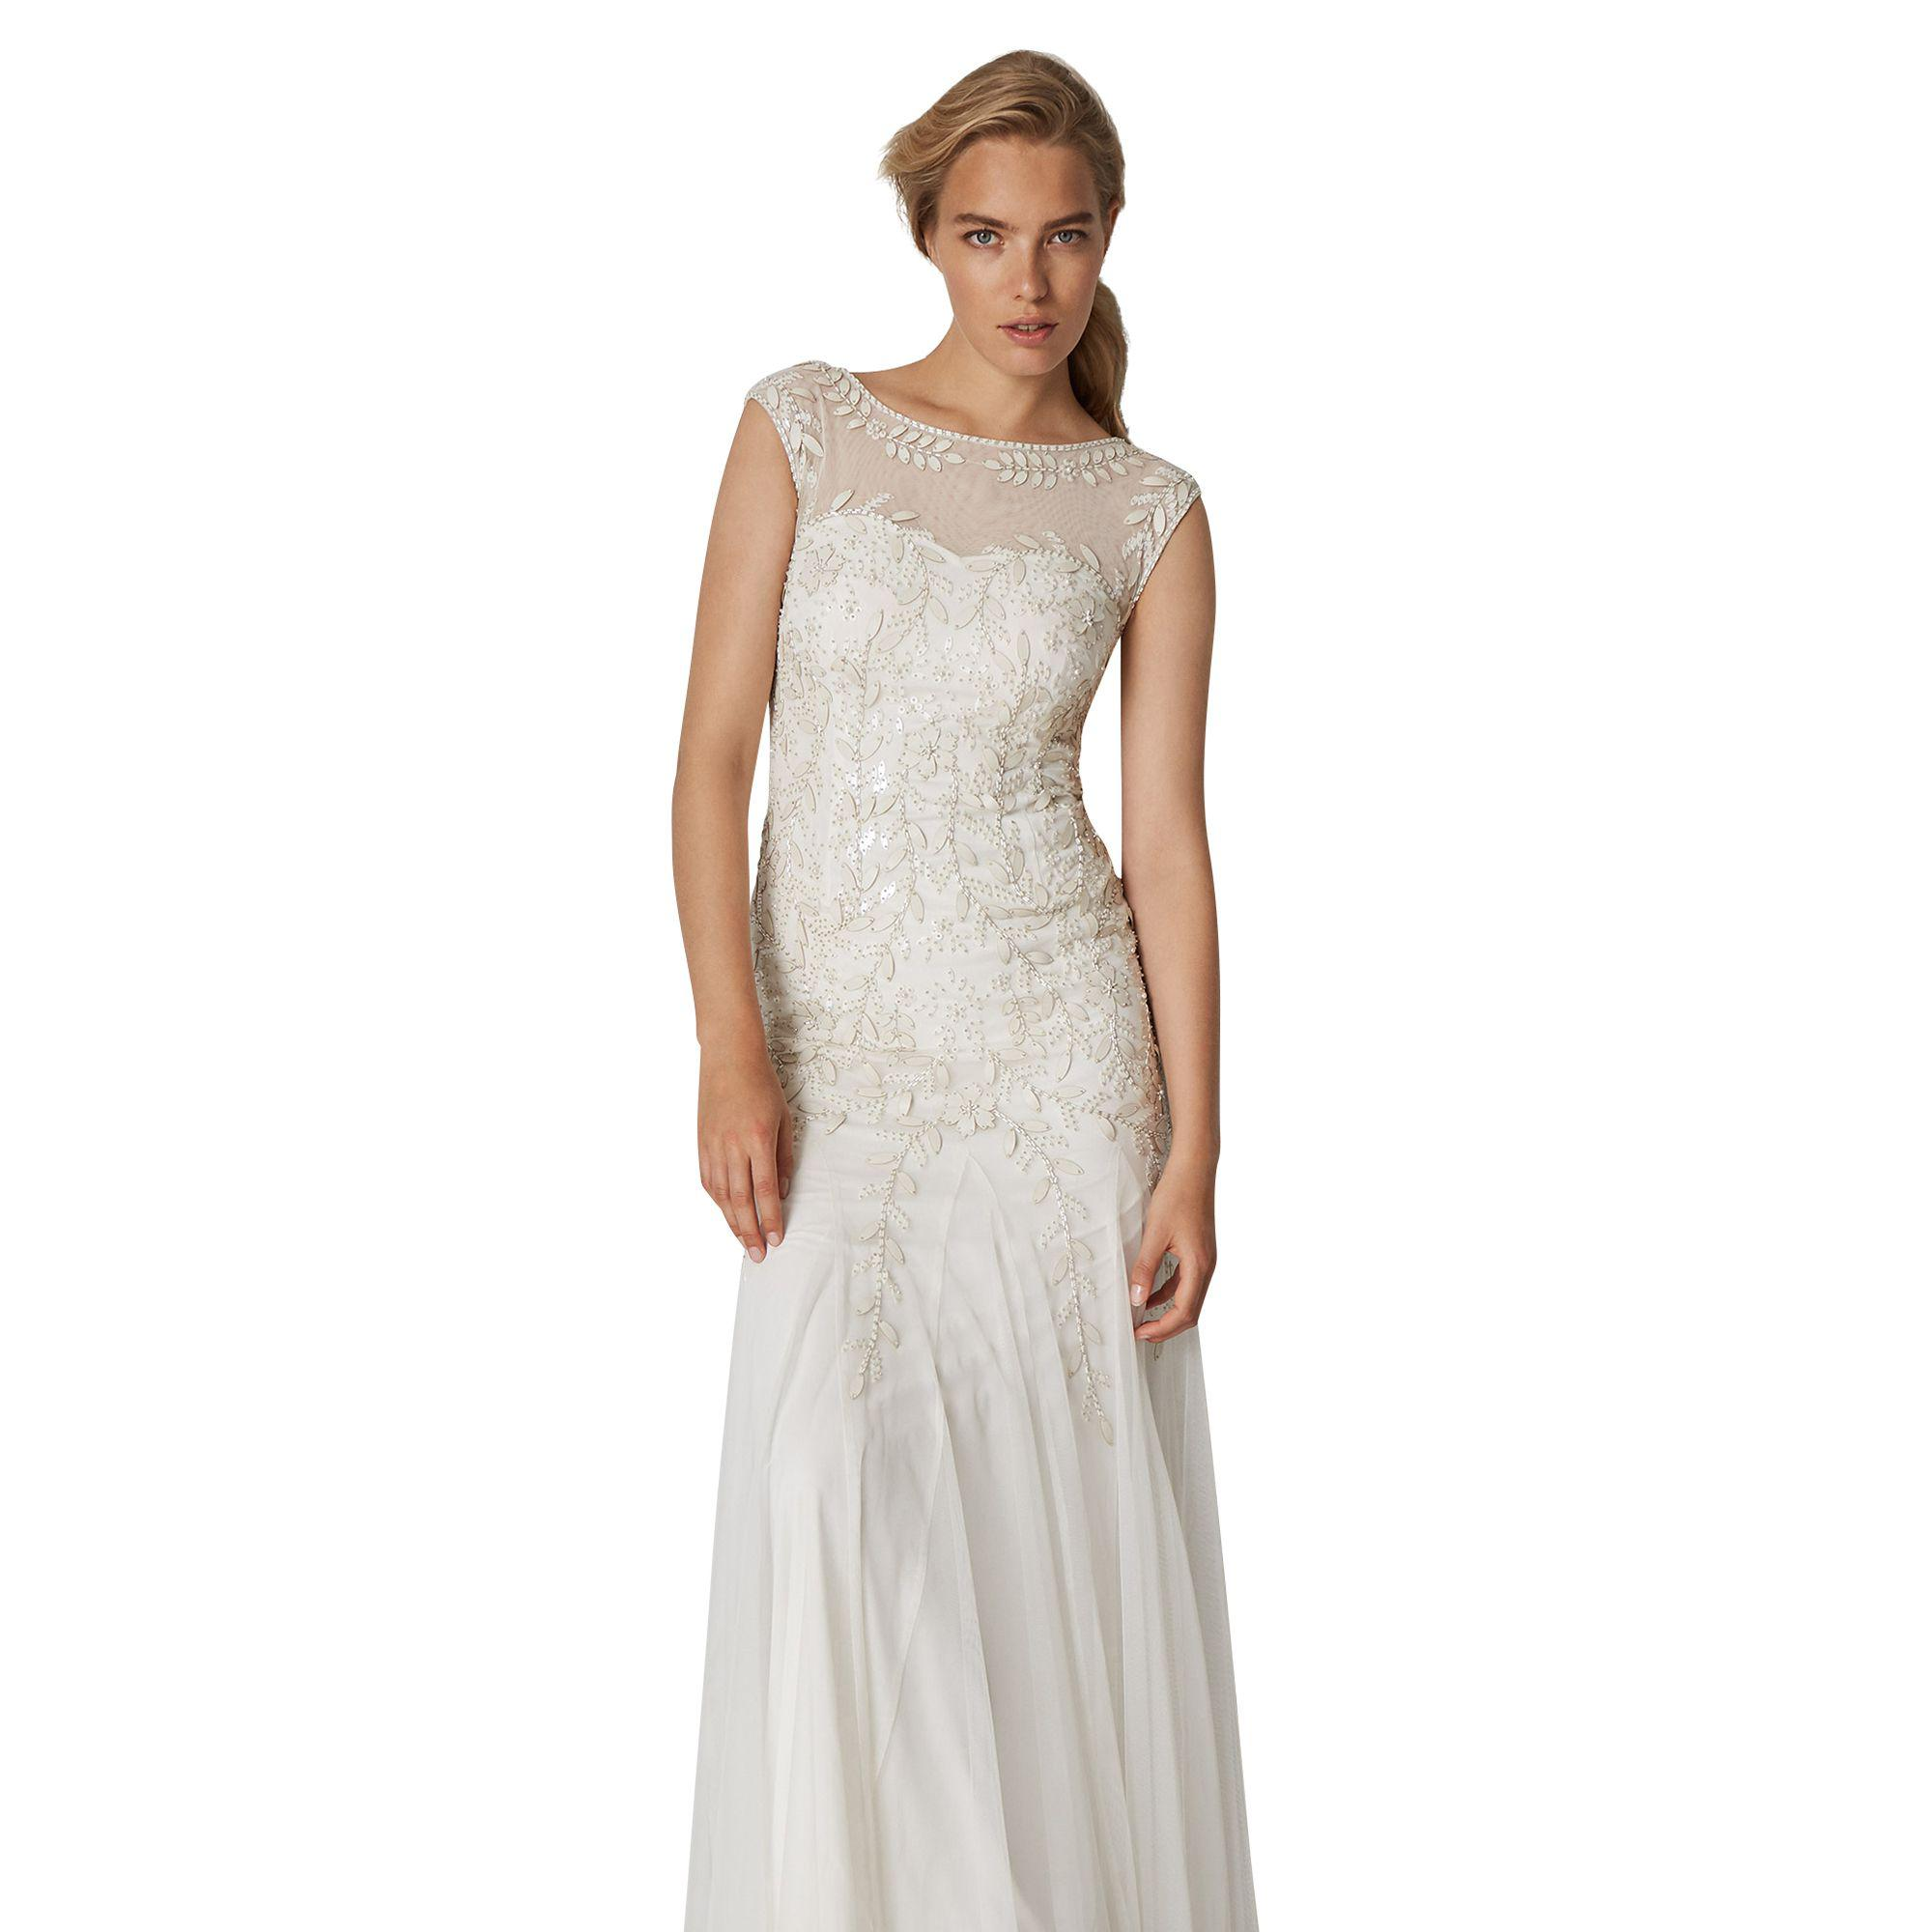 ed4f4a6342b8c Phase Eight Natural Sabina Embellished Bridal Dress in Natural - Lyst